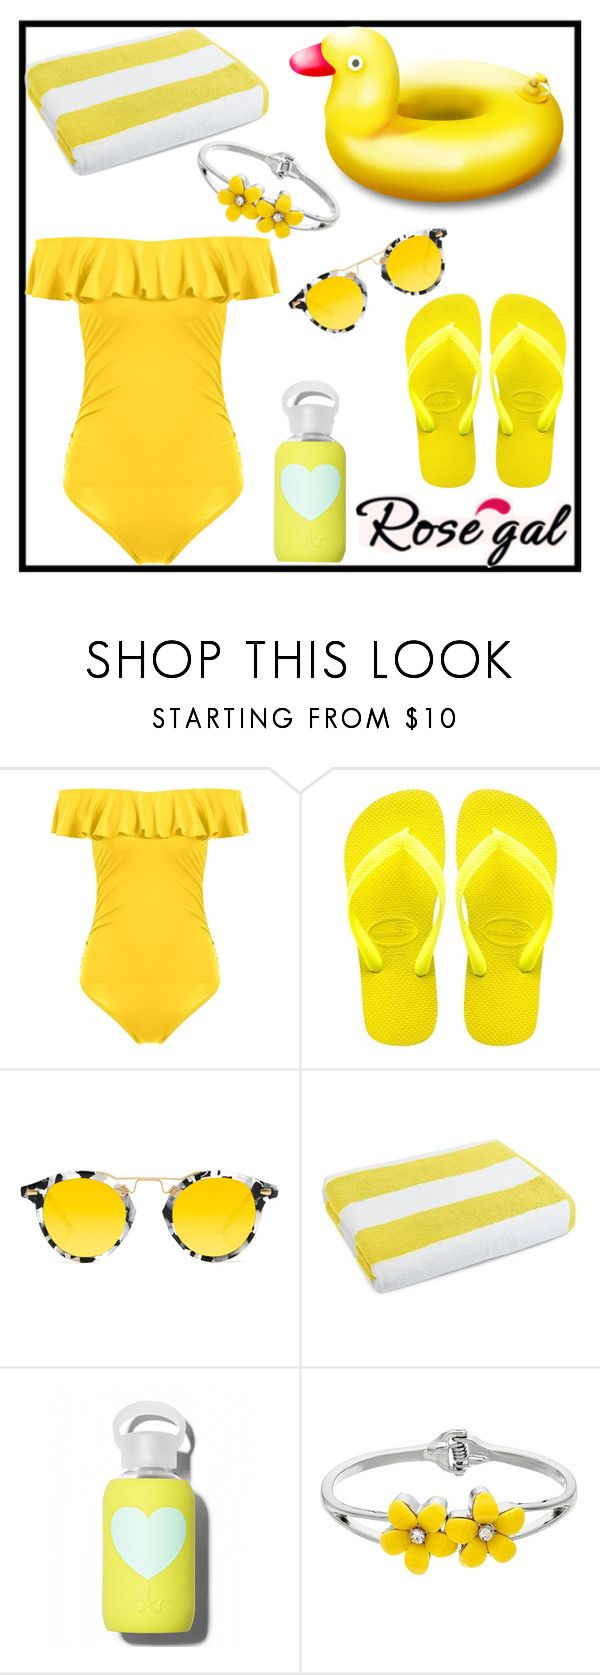 """""""WIN $20 CASH - ROSEGAL Island getaway with ruffles bikini"""" by tlb0318 ❤ liked on Polyvore featuring Havaianas, Krewe, Luxor Linens and bkr"""